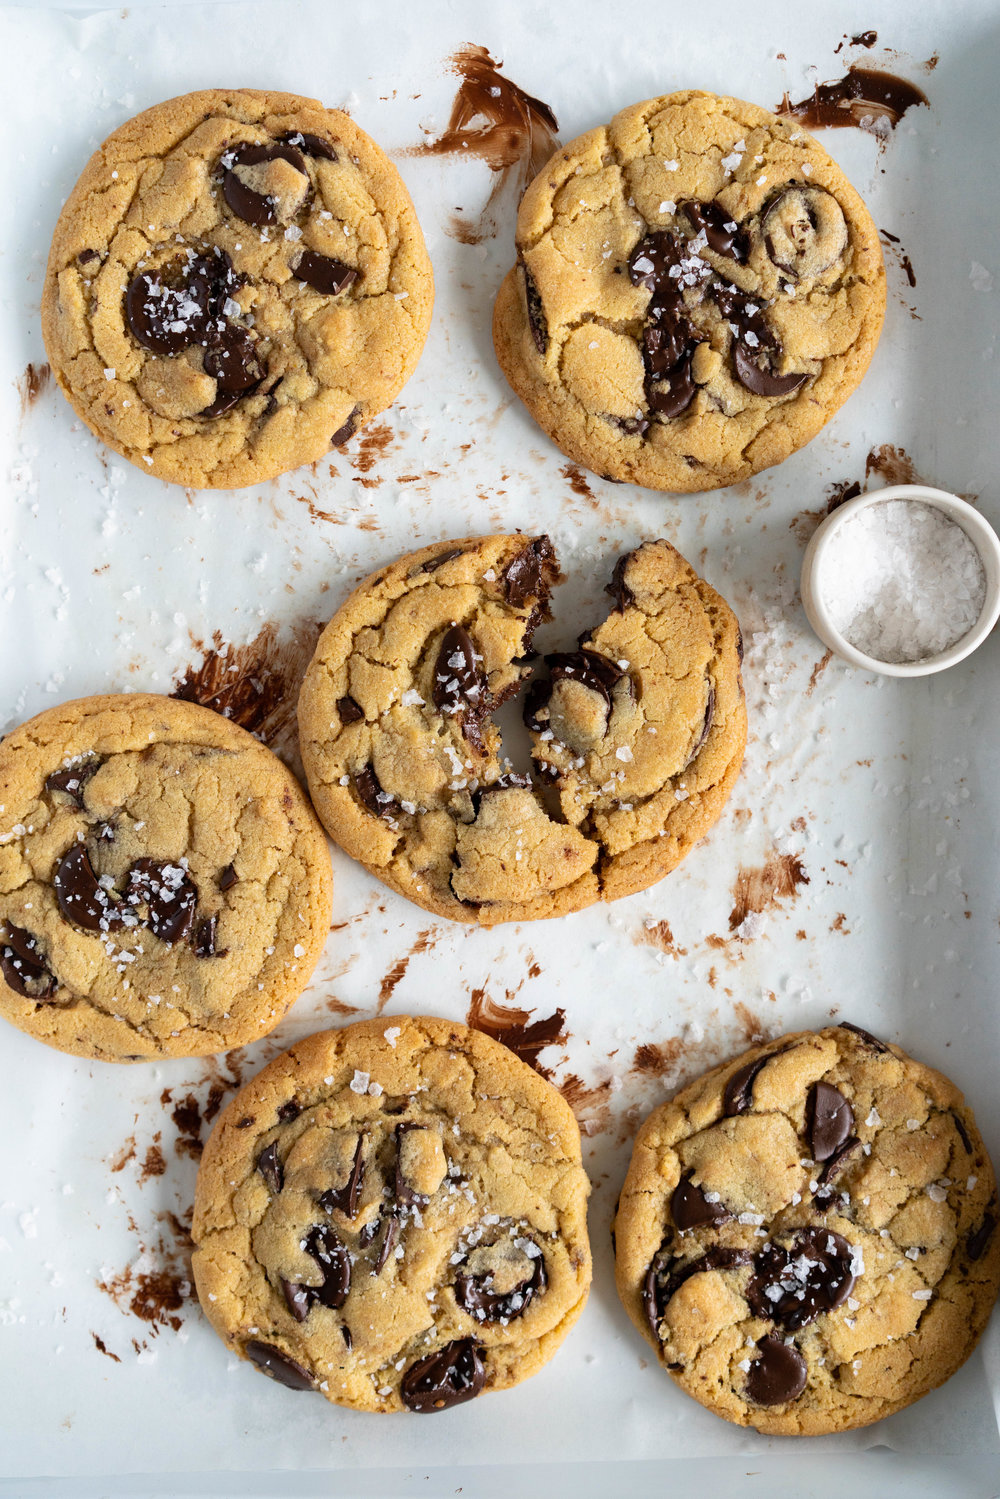 Olive Oil Chocolate Chip Cookies from The Cookie Book by Rebecca Firth. Huge, chewy chocolate chip cookies, with a unique fruitiness from the olive oil. These are a perfect twist on the classic chocolate chip cookie #chocolatechipcookie #oliveoilcookie #easycookierecipe